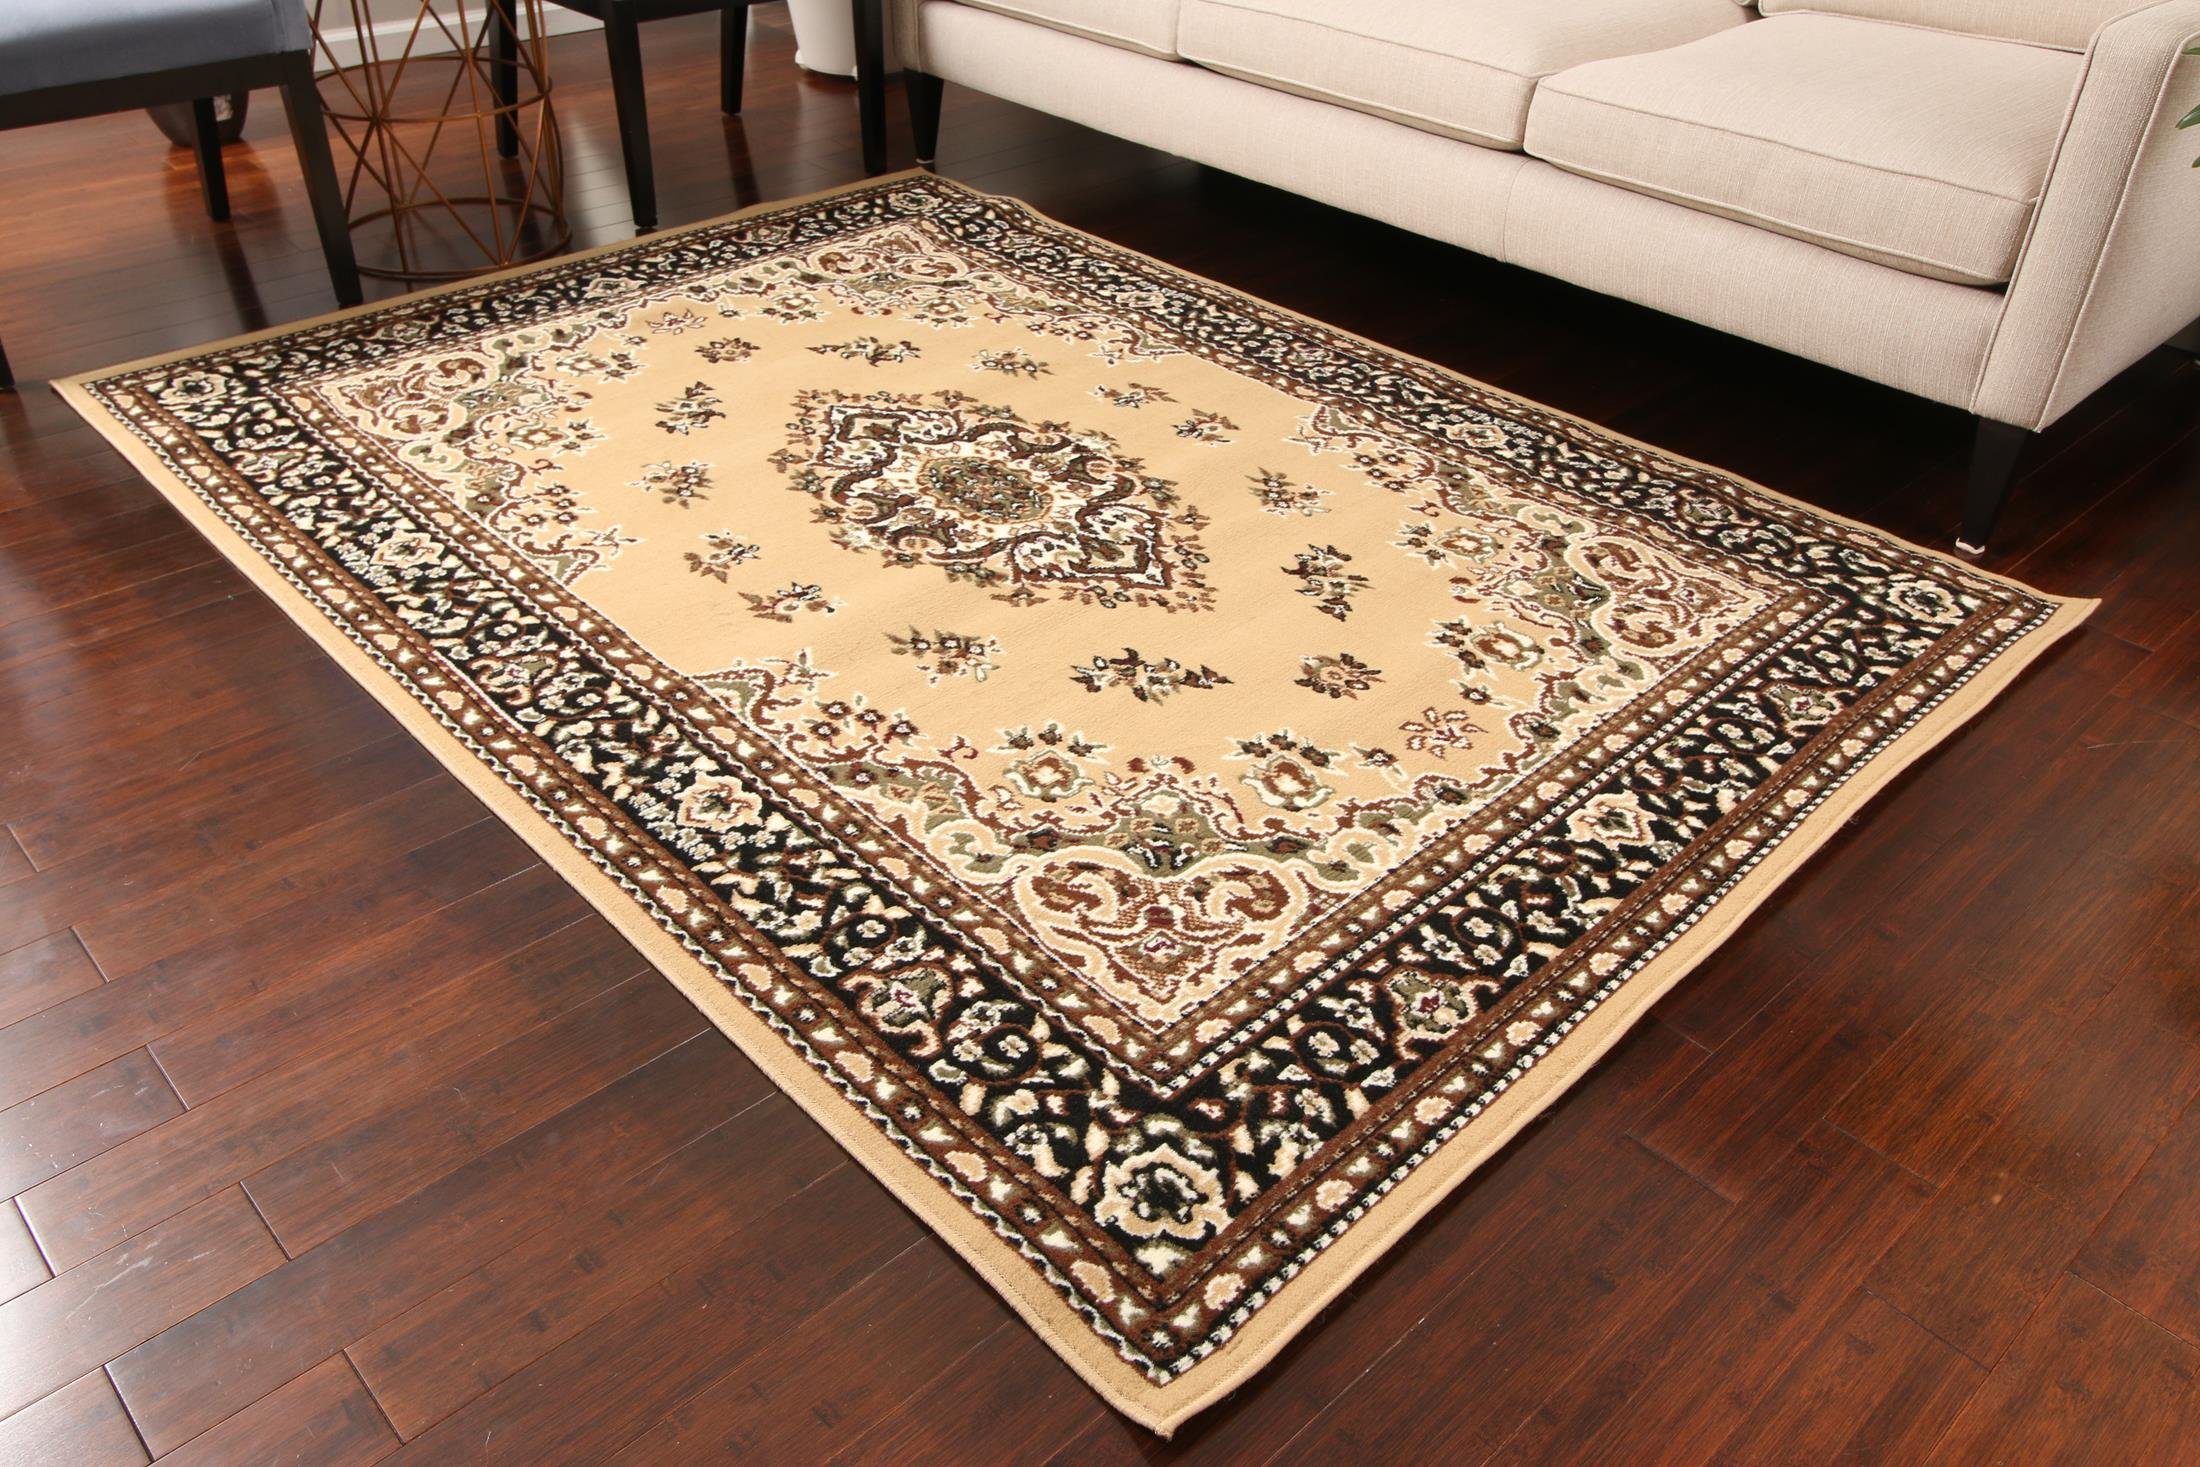 Generations New Beige Oriental Traditional Isfahan Persian Area Rugs Rug 8052beige 2 x 3